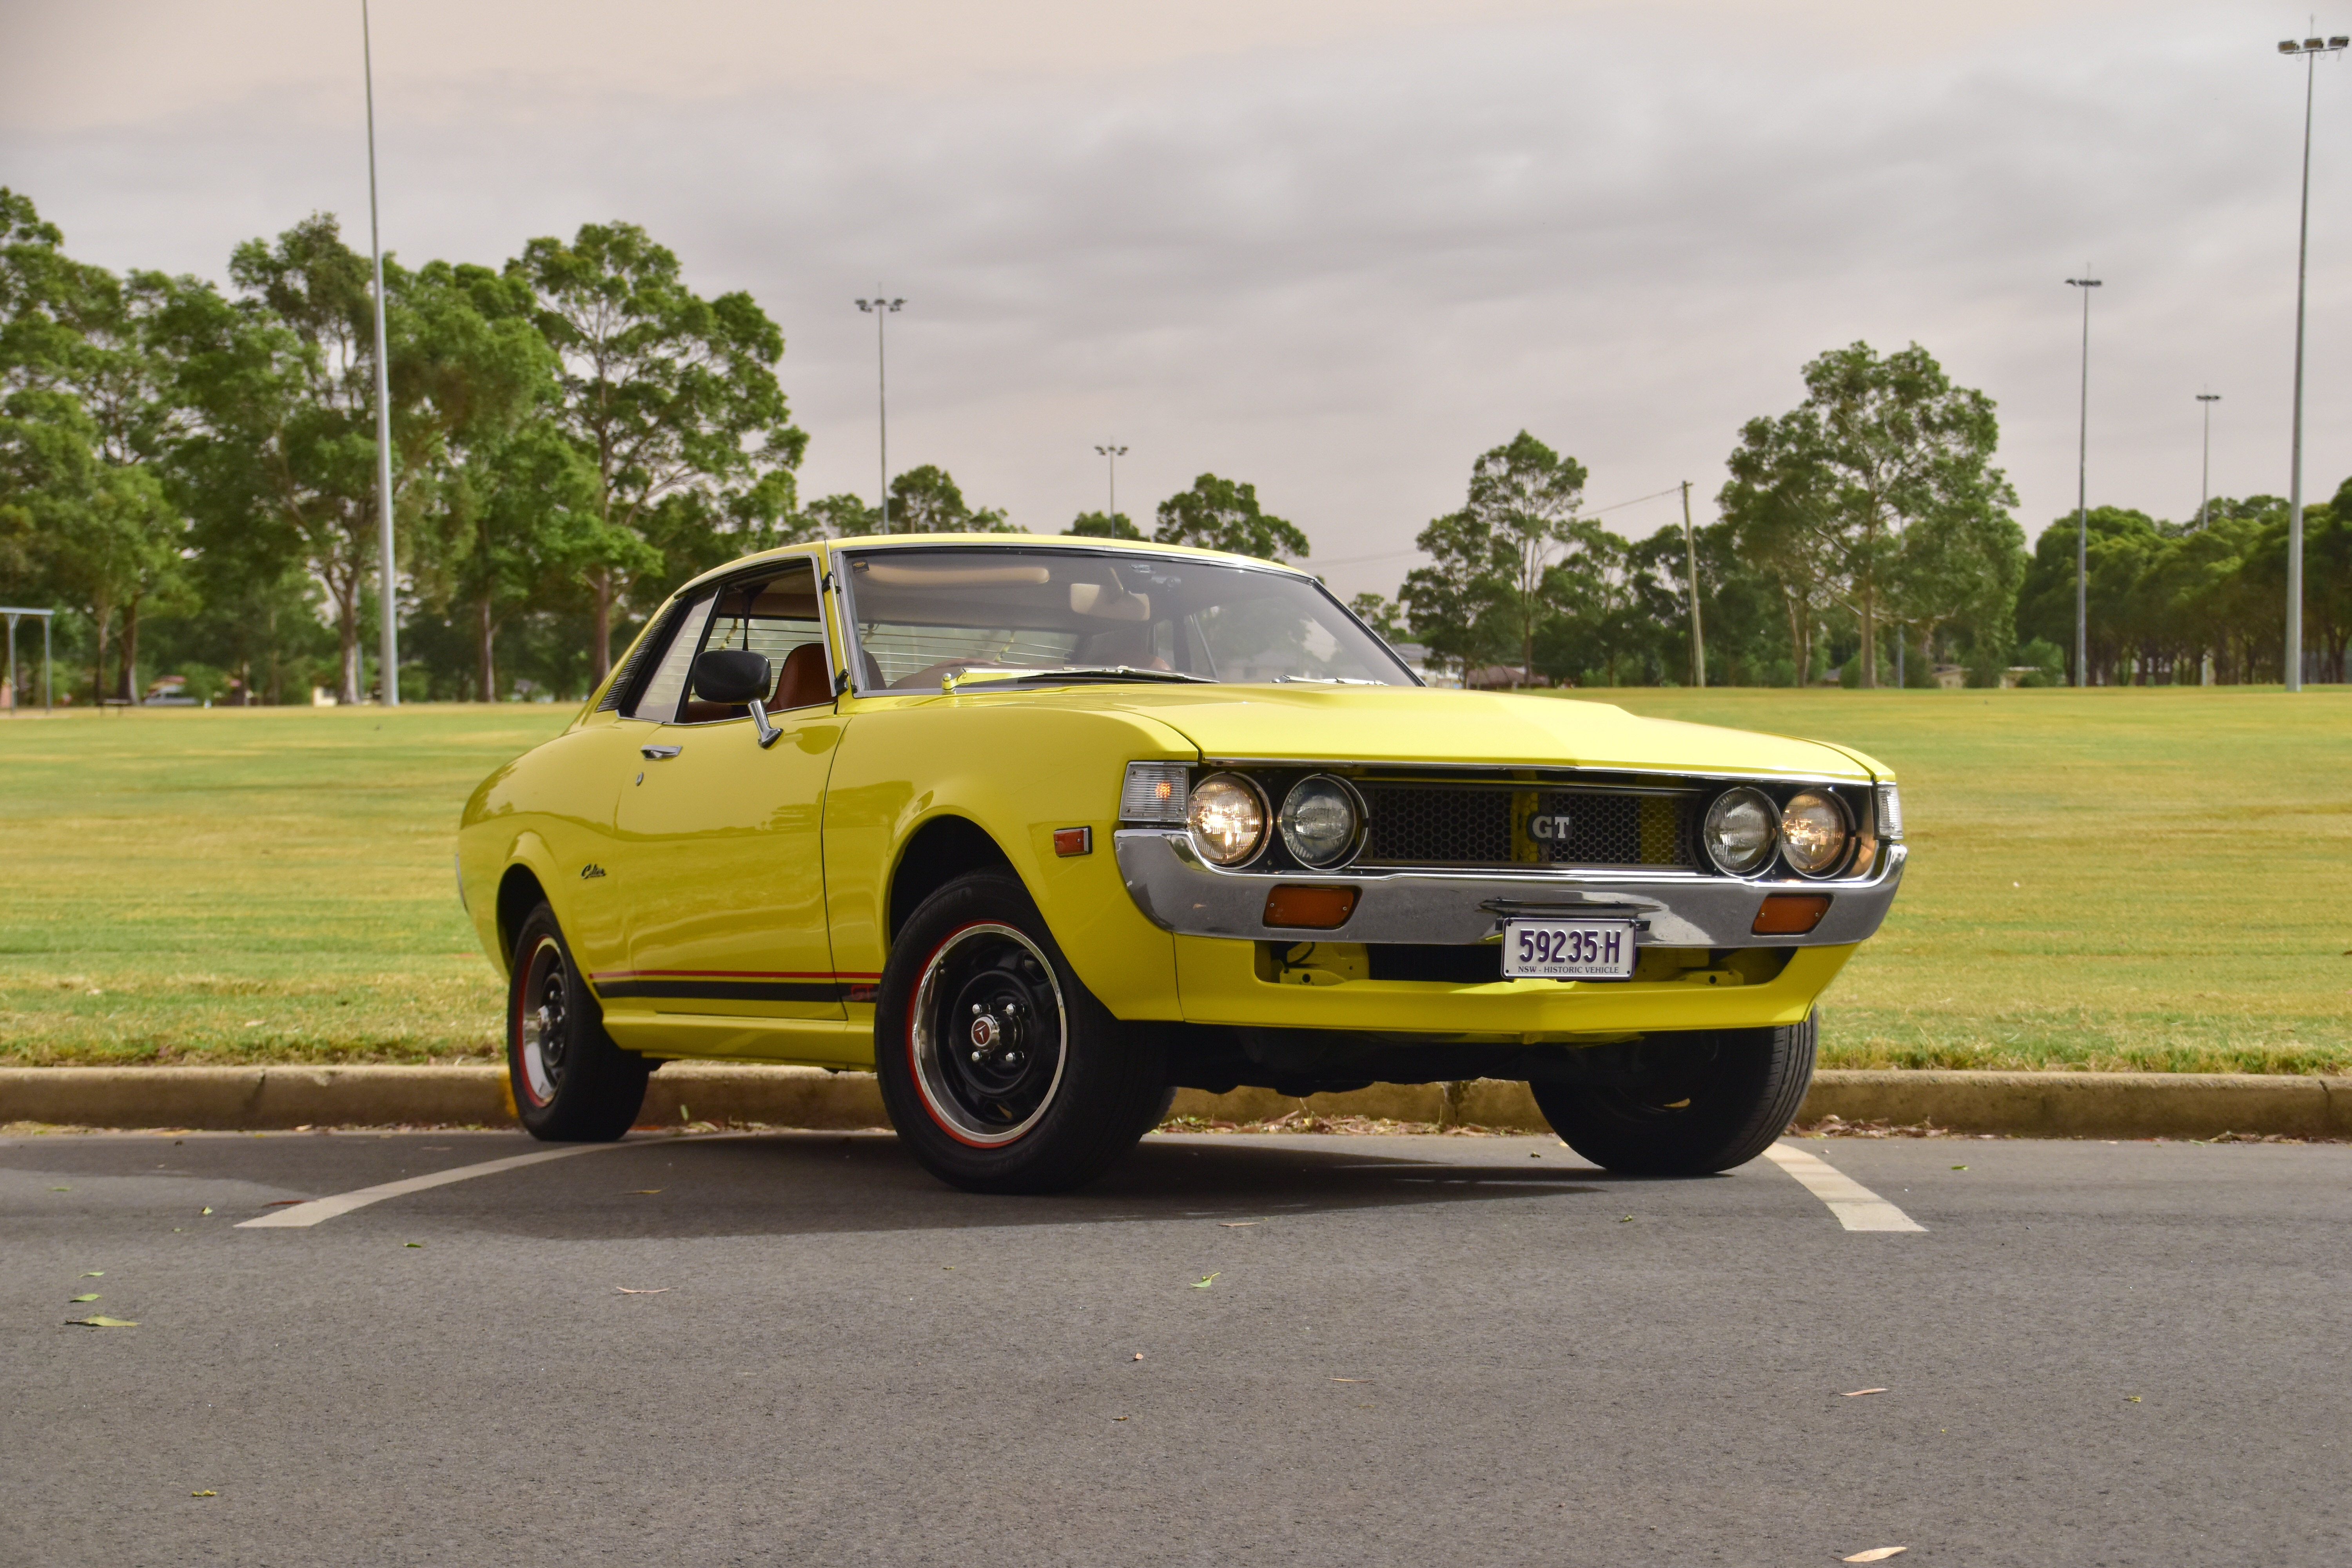 Toyota Celica Cars for sale in Australia - JUST CARS